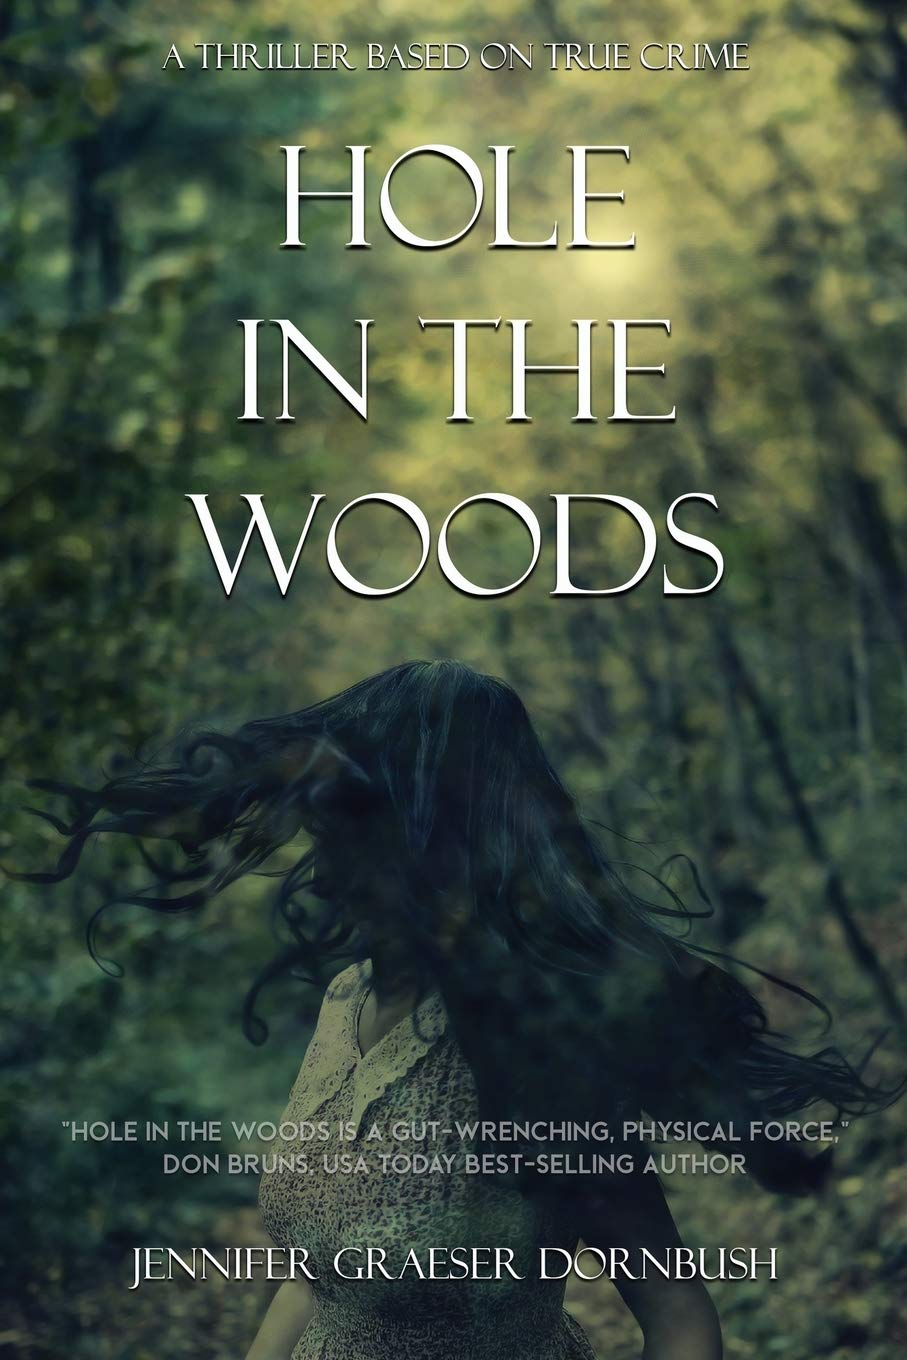 Hole in the Woods